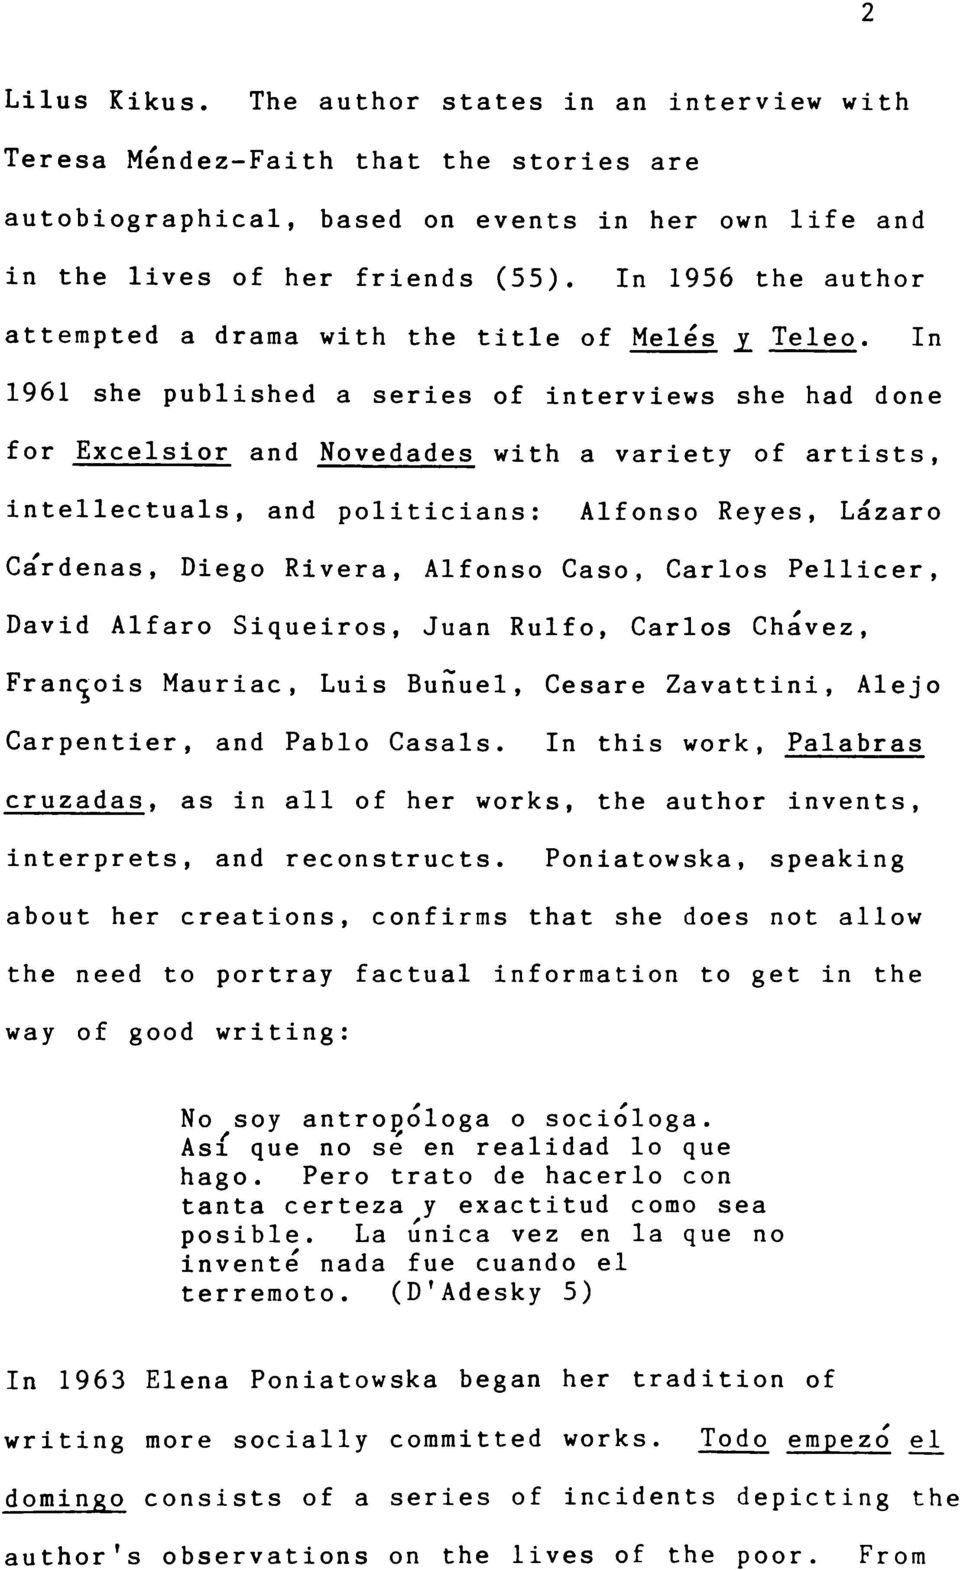 In 1961 she published a series of interviews she had done for Excelsior and Novedades with a variety of artists, intellectuals, and politicians: Alfonso Reyes, Lazaro Ca'rdenas, Diego Rivera, Alfonso